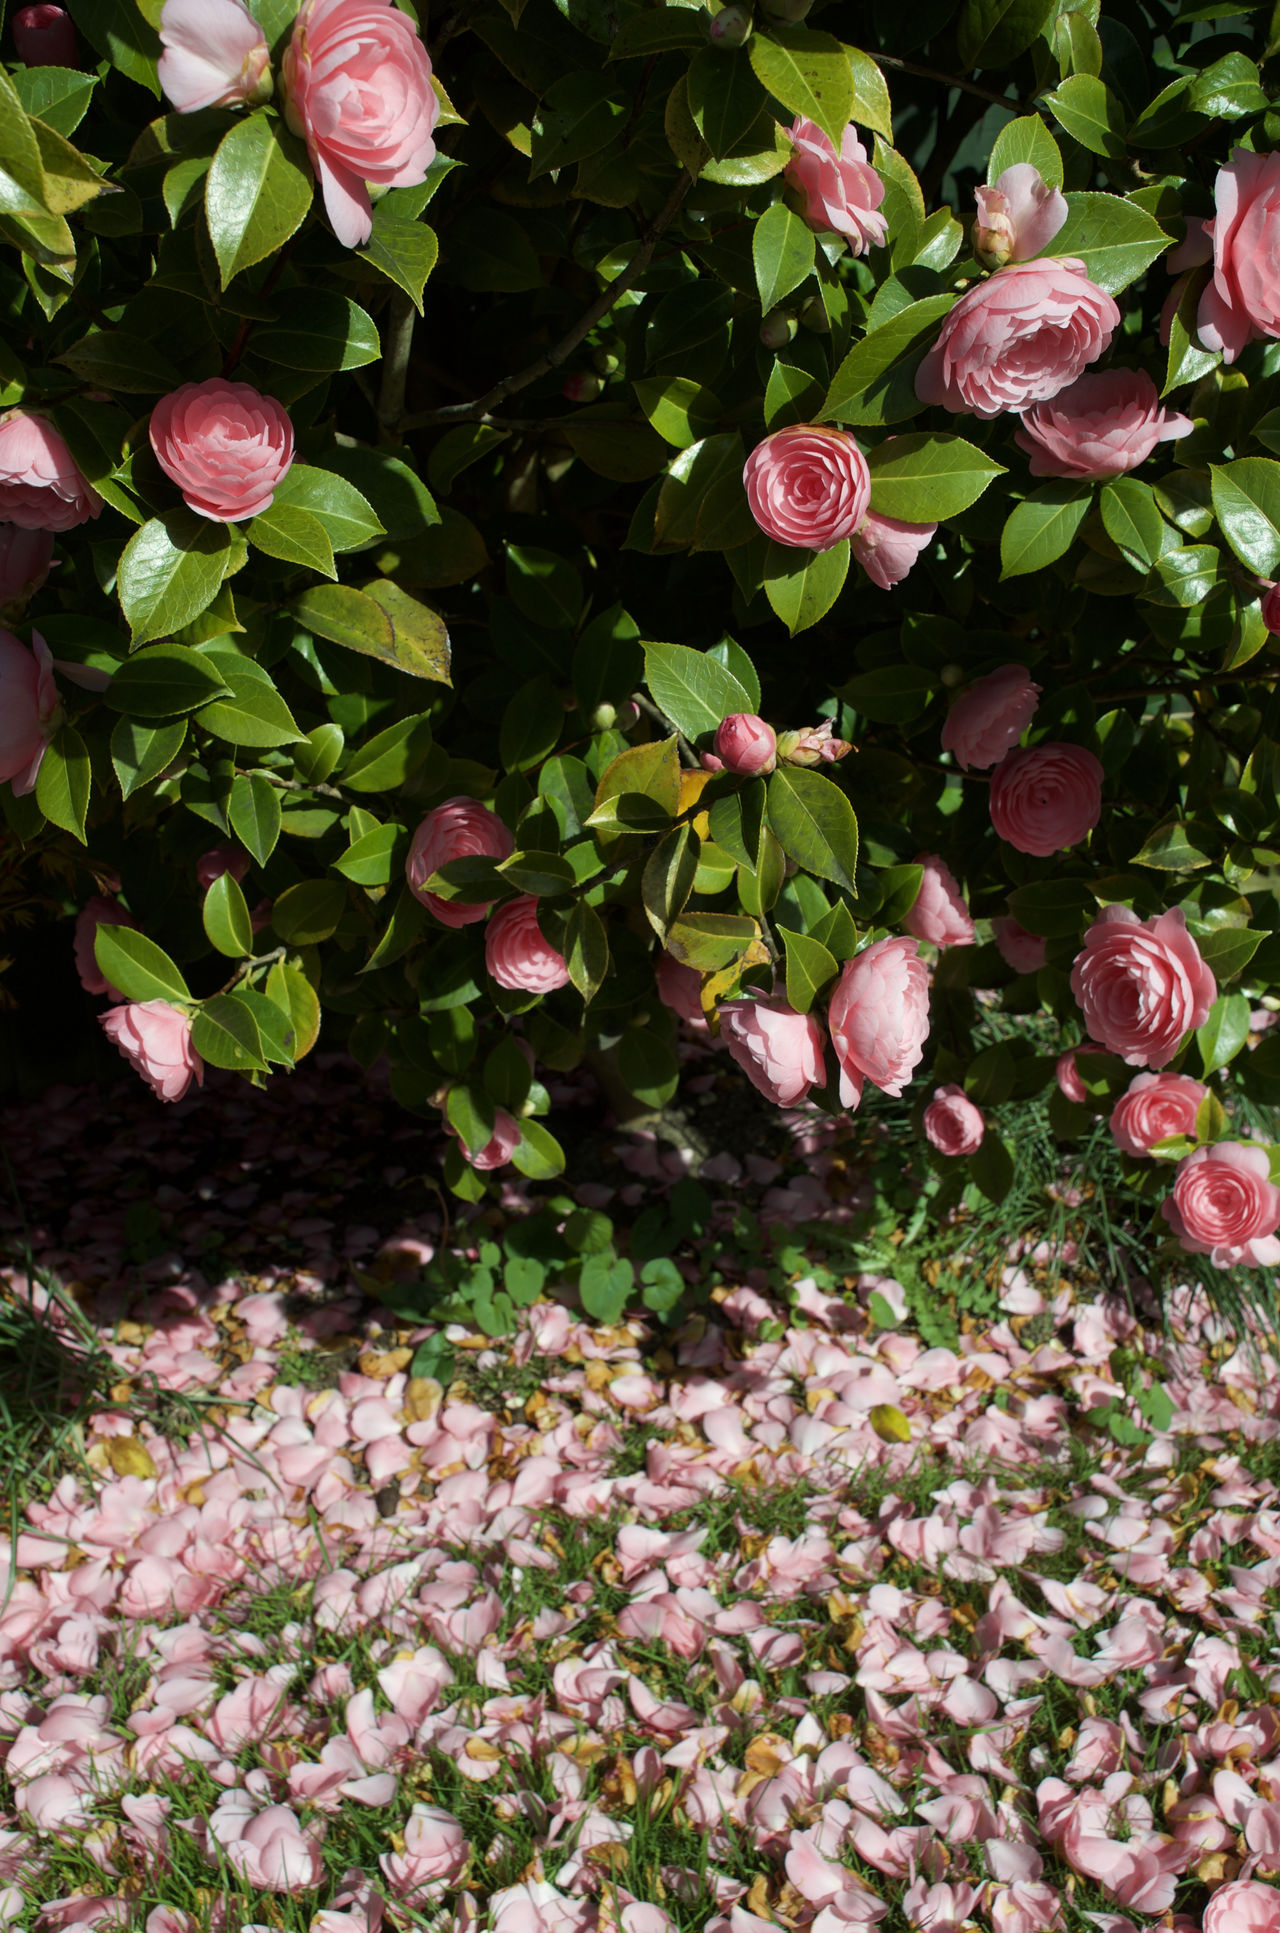 Pink Camellia and dropped petals Beauty In Nature Camellia Close-up Day Flower Flower Head Fragility Freshness Growth Leaf Nature No People Outdoors Petal Pink Color Pink Flower Plant Millennial Pink